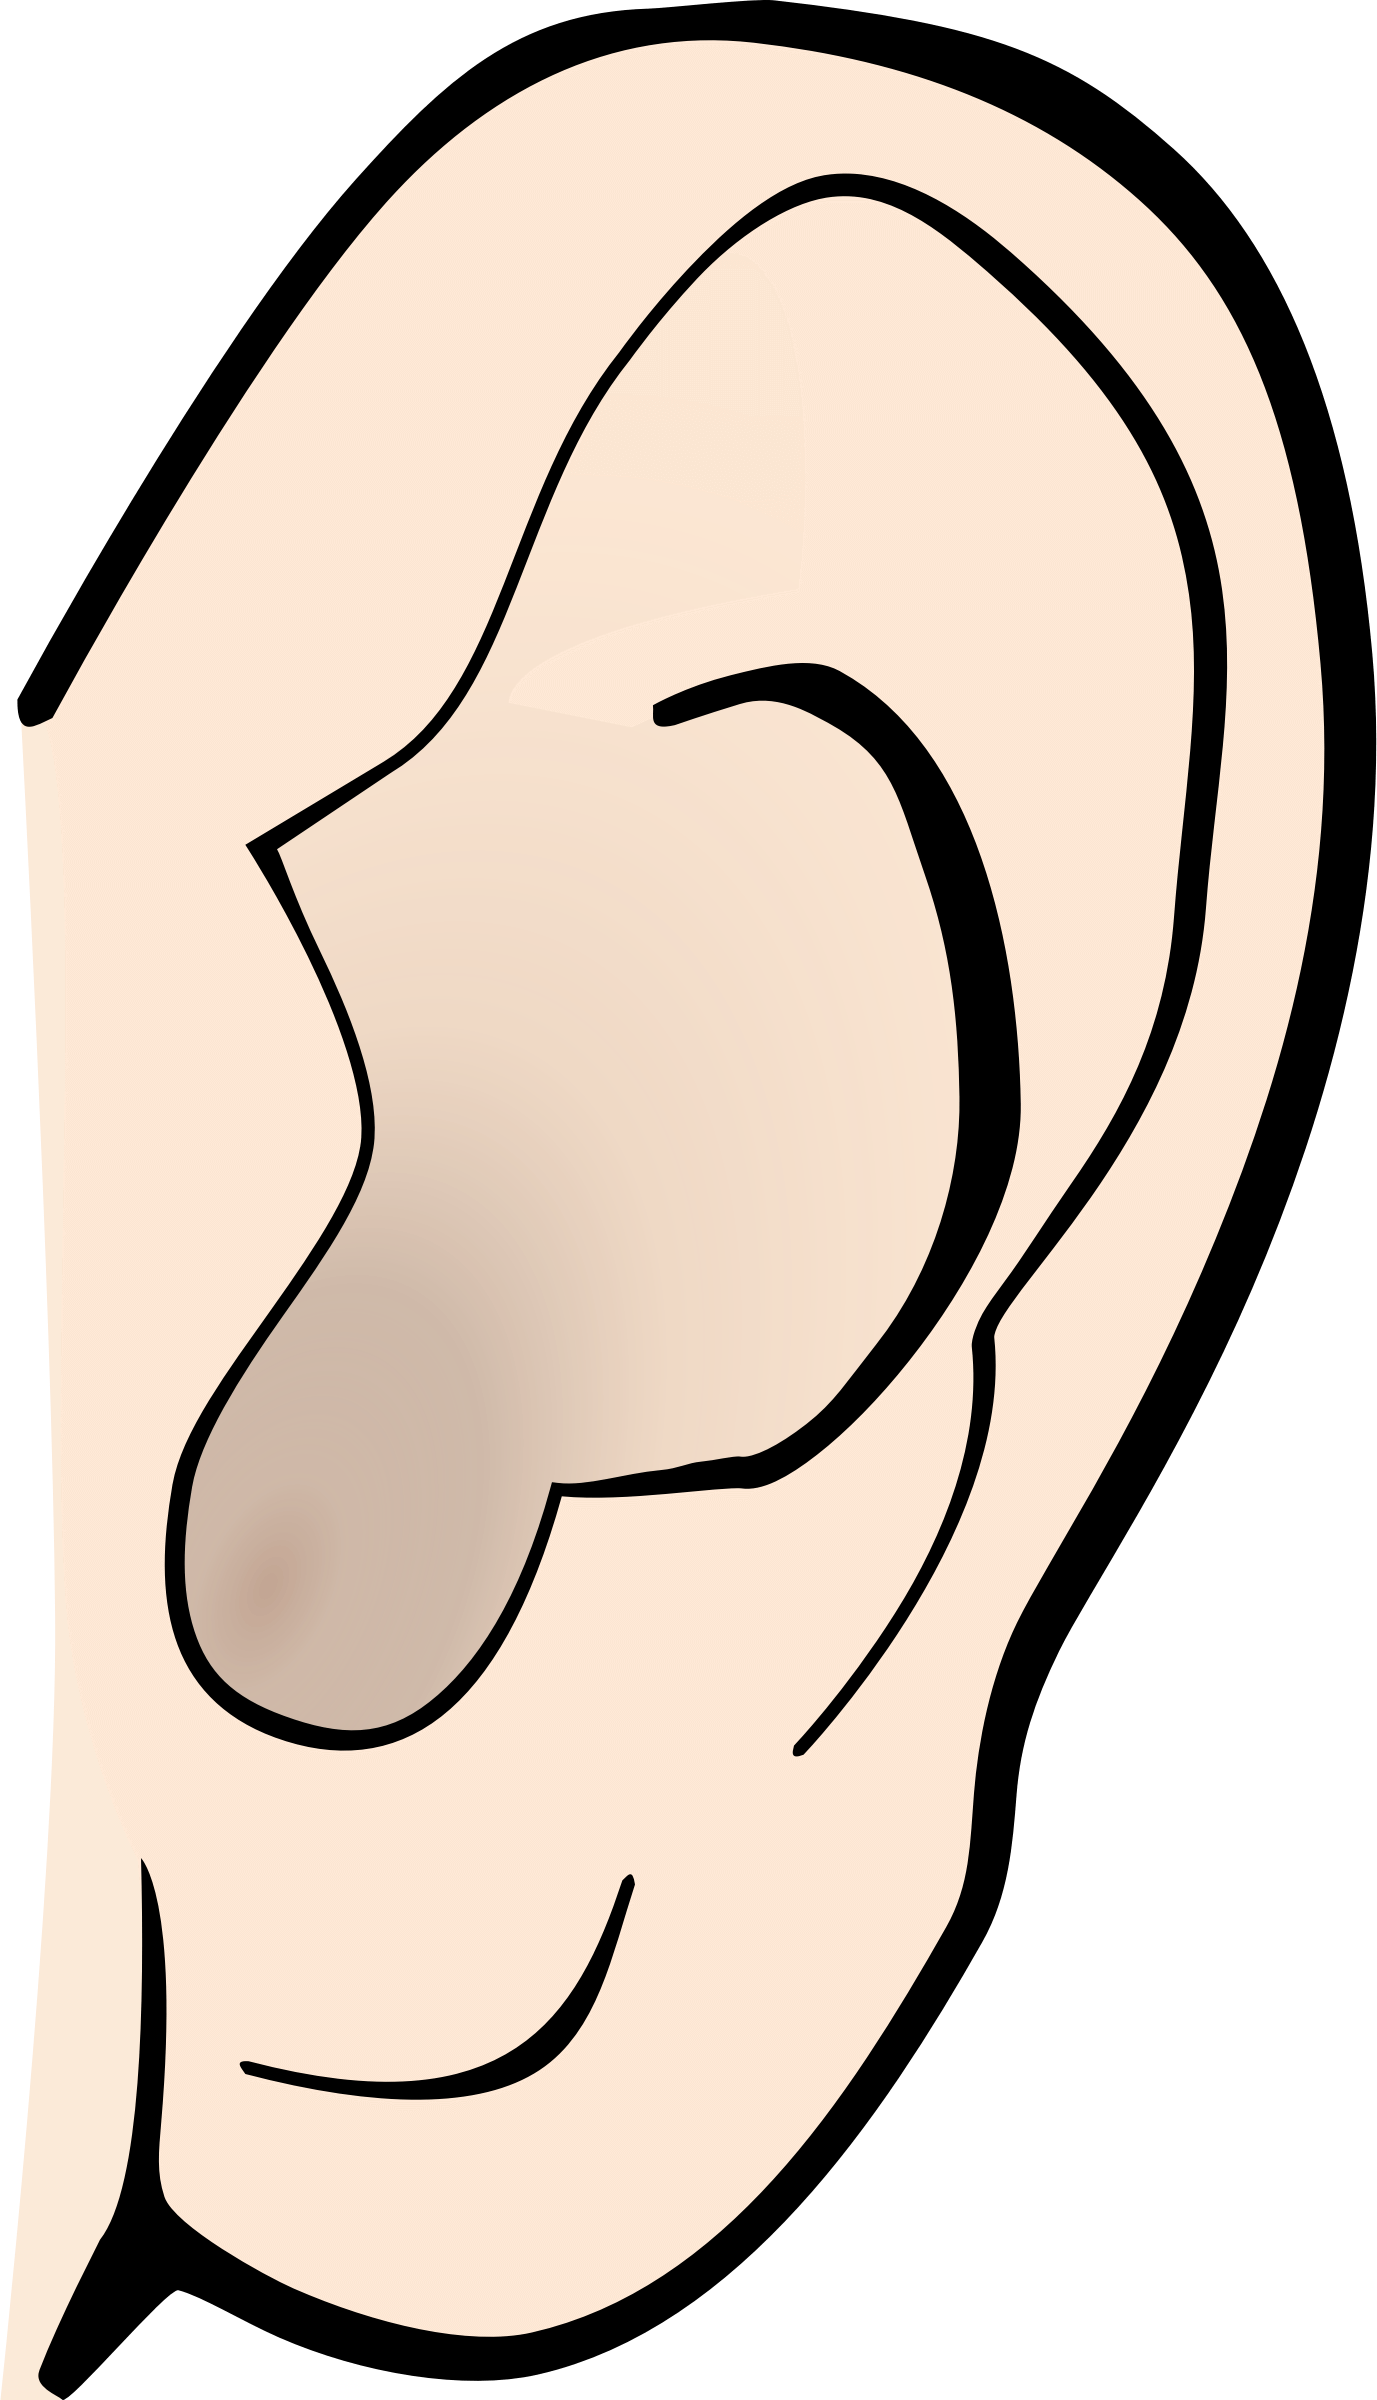 Group open cliparts. Ears clipart effective listening